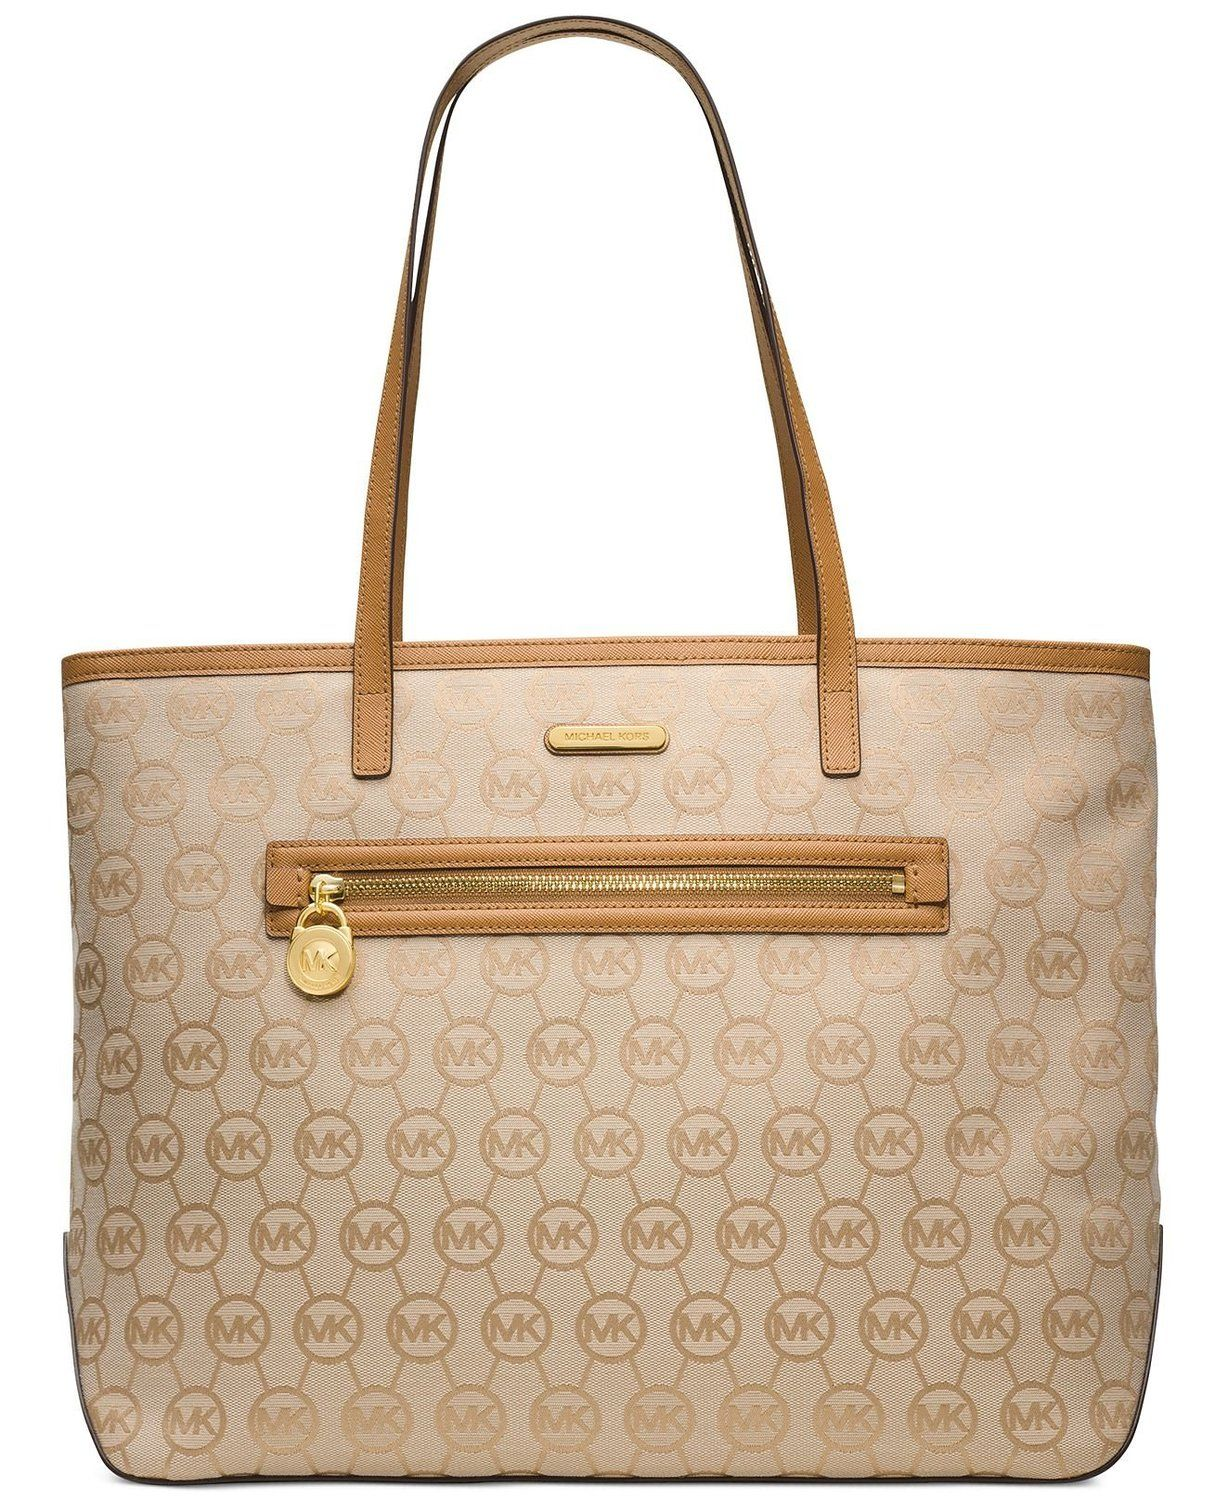 Top Handle Bags Michael Kors Signature Jet Set Large East West Tote In Beige Camel And Tan